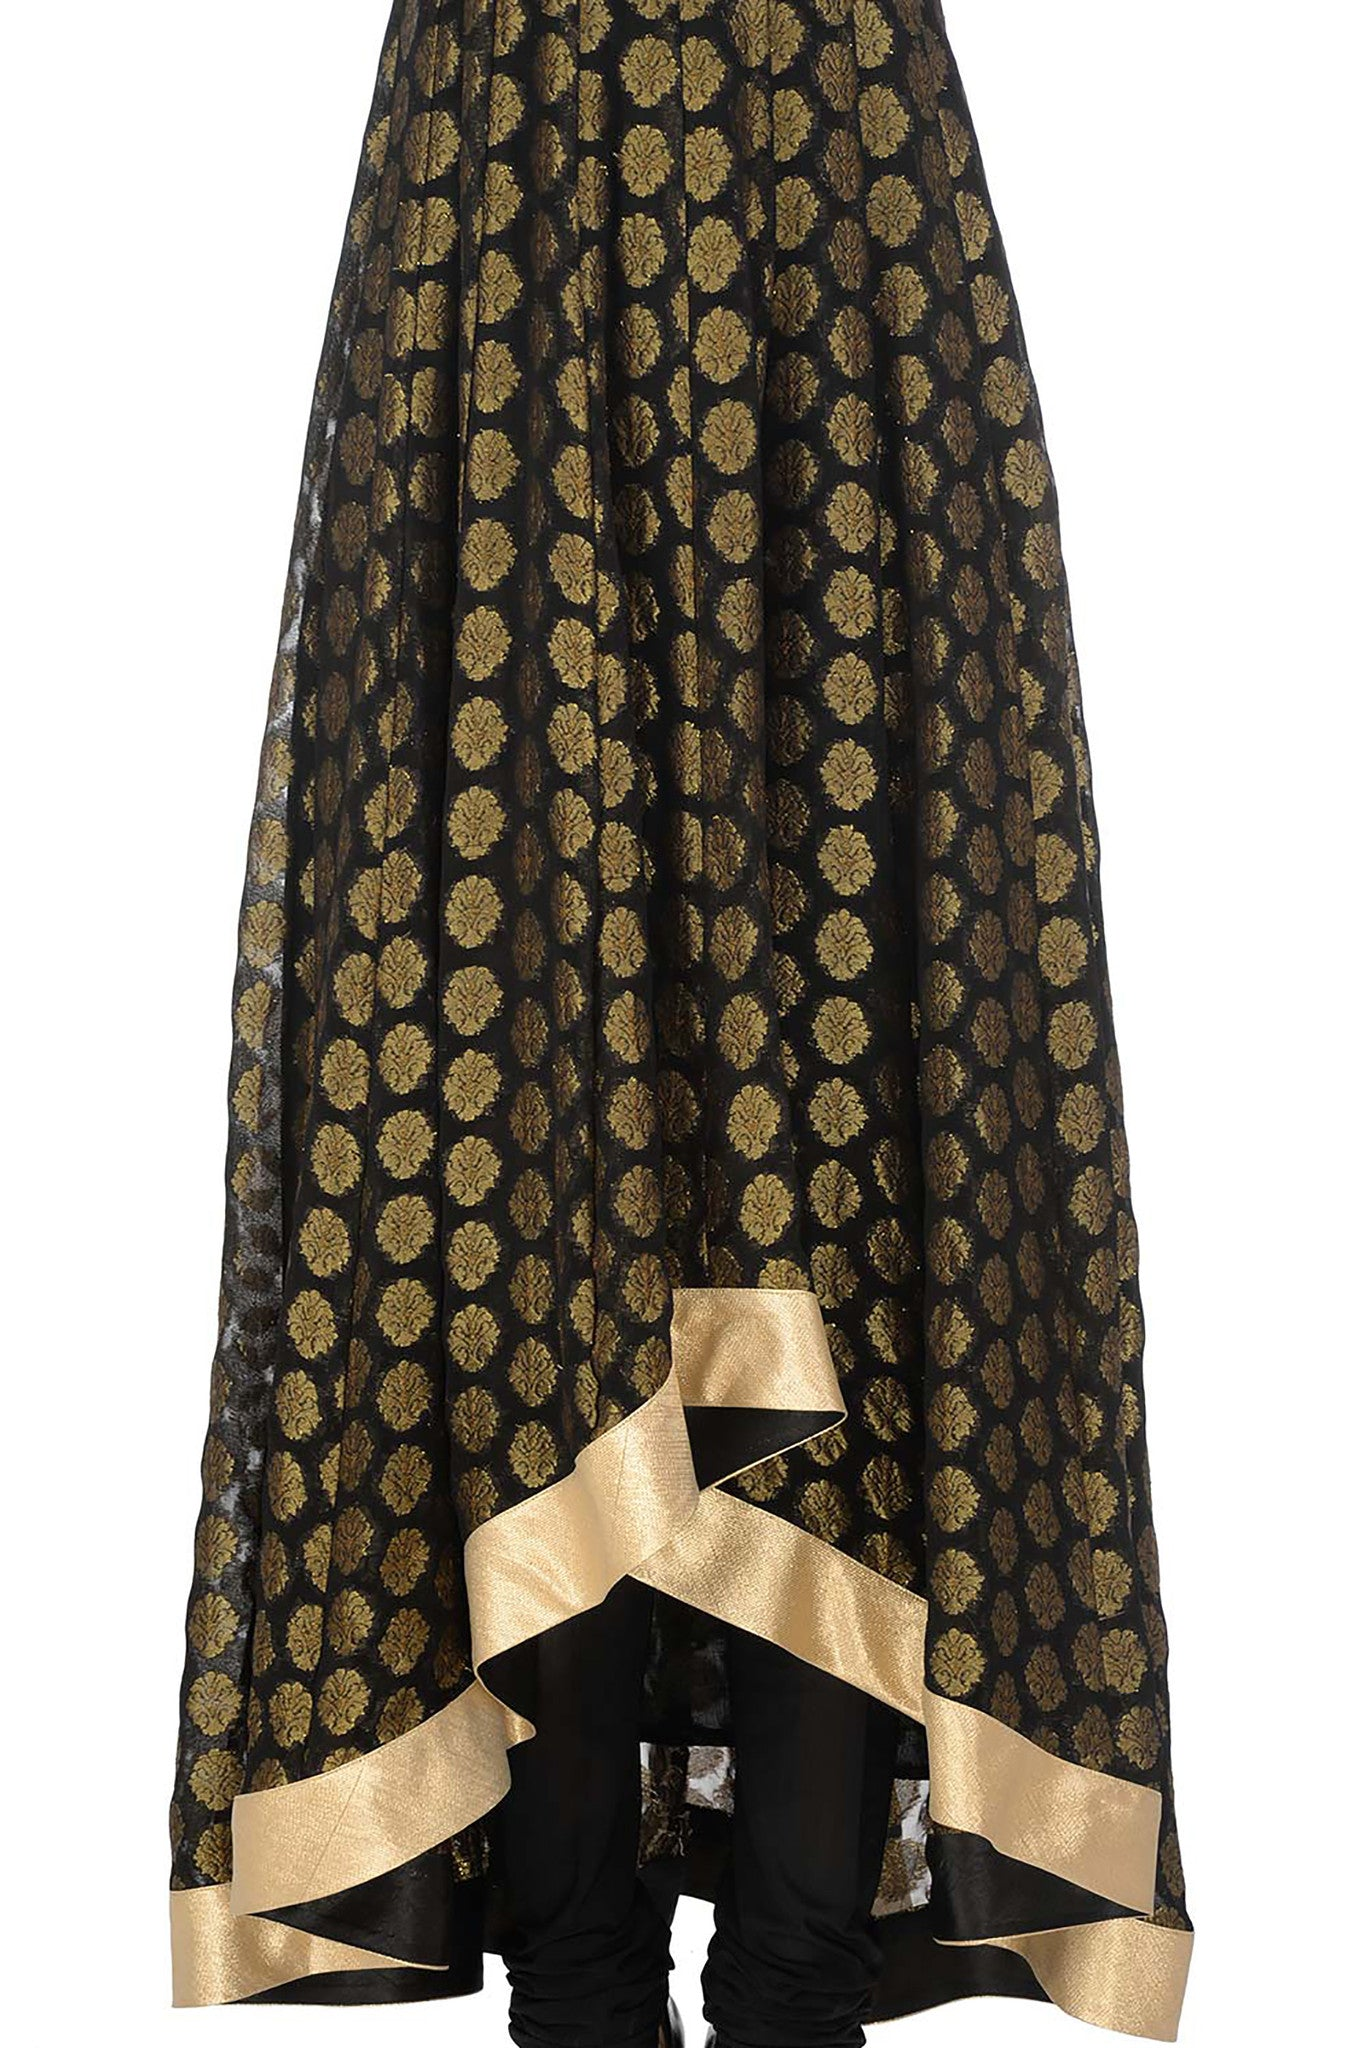 Black & Gold Anarkali Skirt